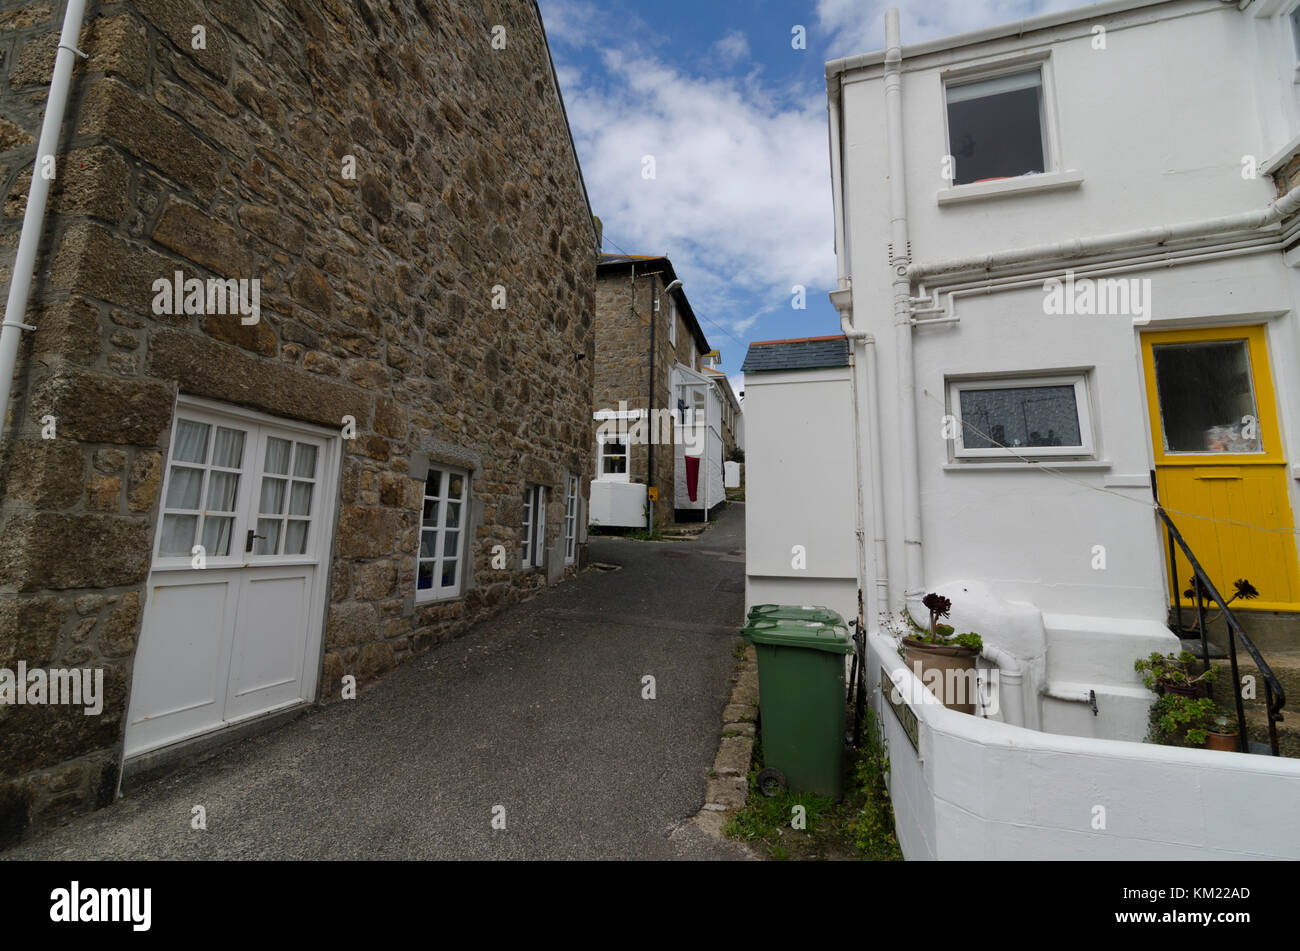 Cottages and row of terraced or terrace houses on narrow backstreets in St Ives, Cornwall, UK Stock Photo